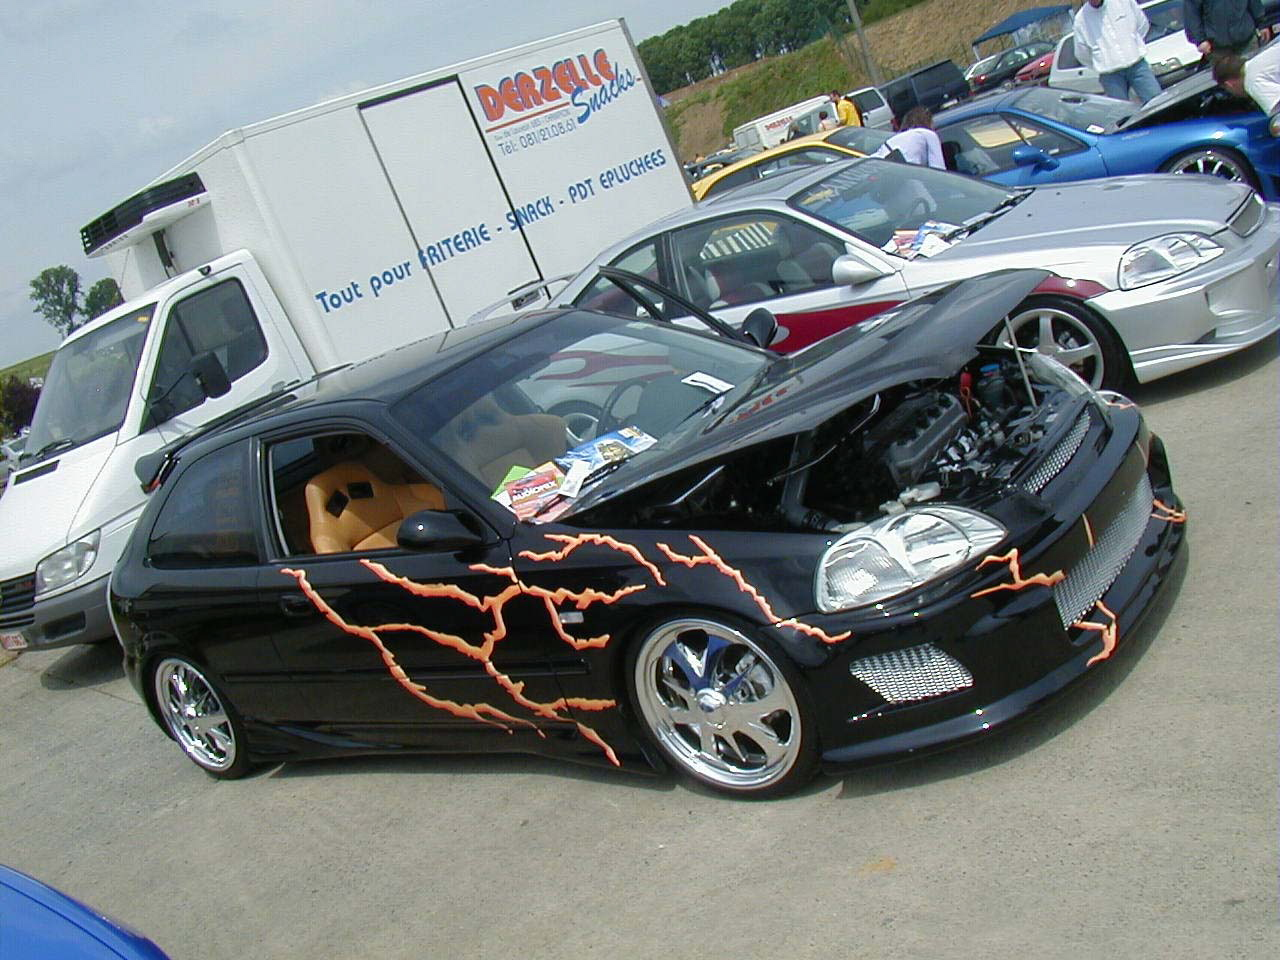 1995 honda civic tuning - photo #6